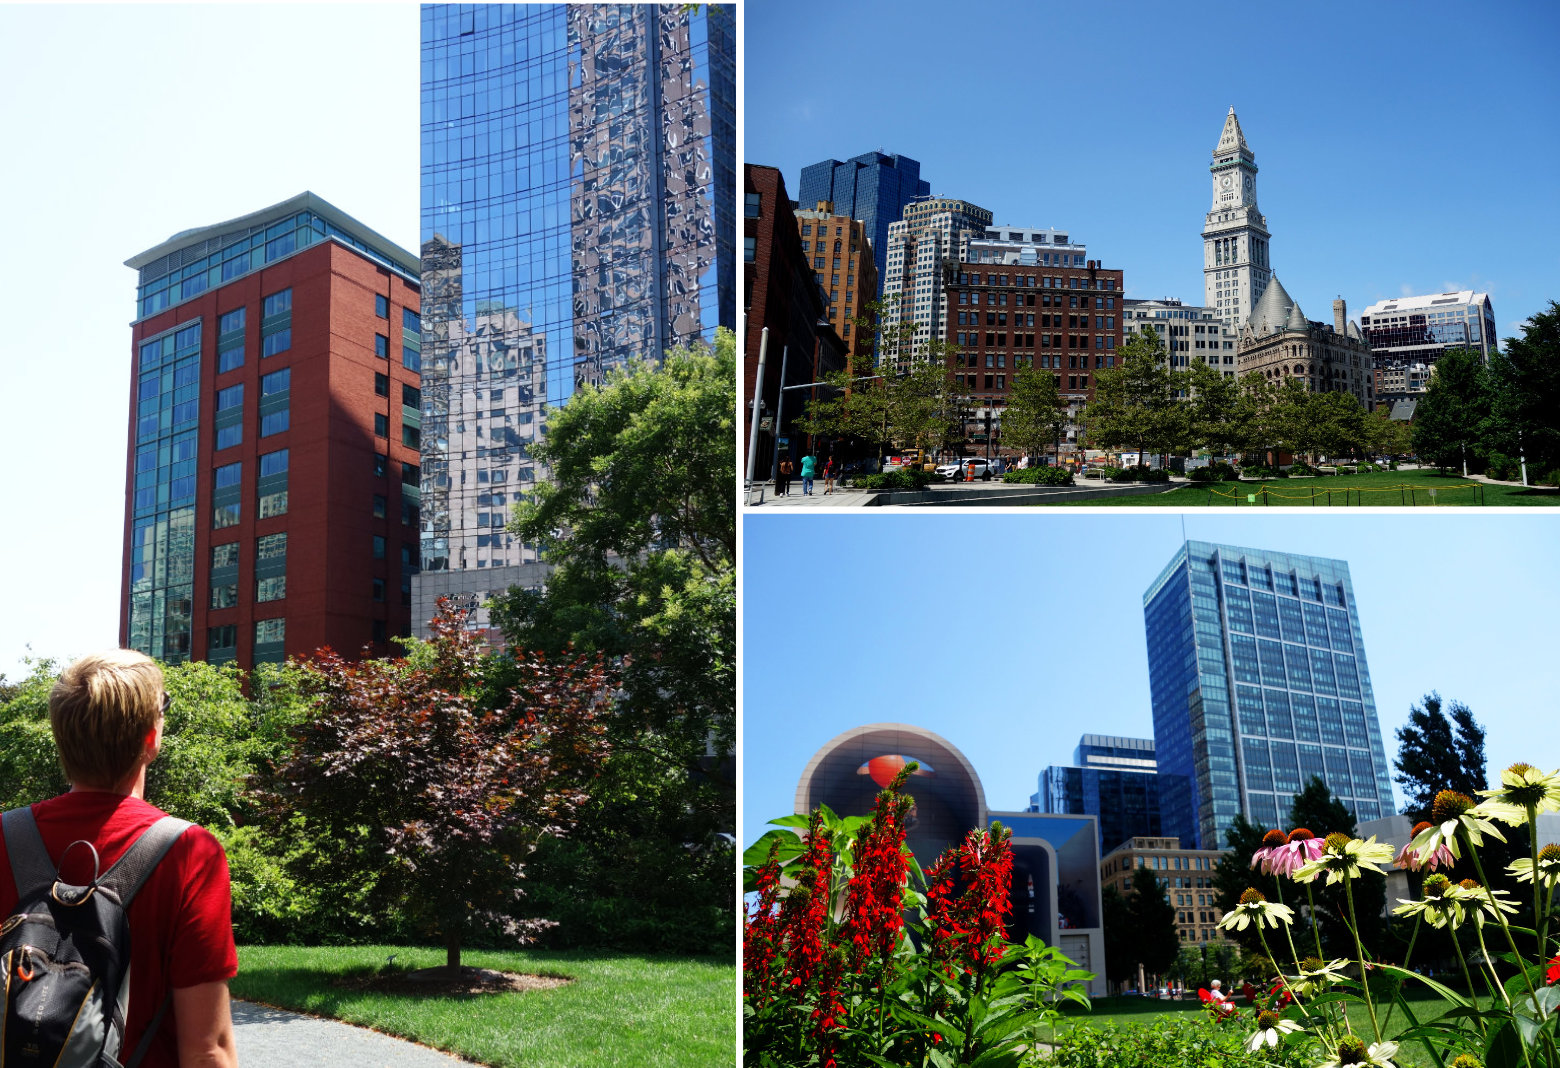 Boston Financial District Rose Kennedy Greenway